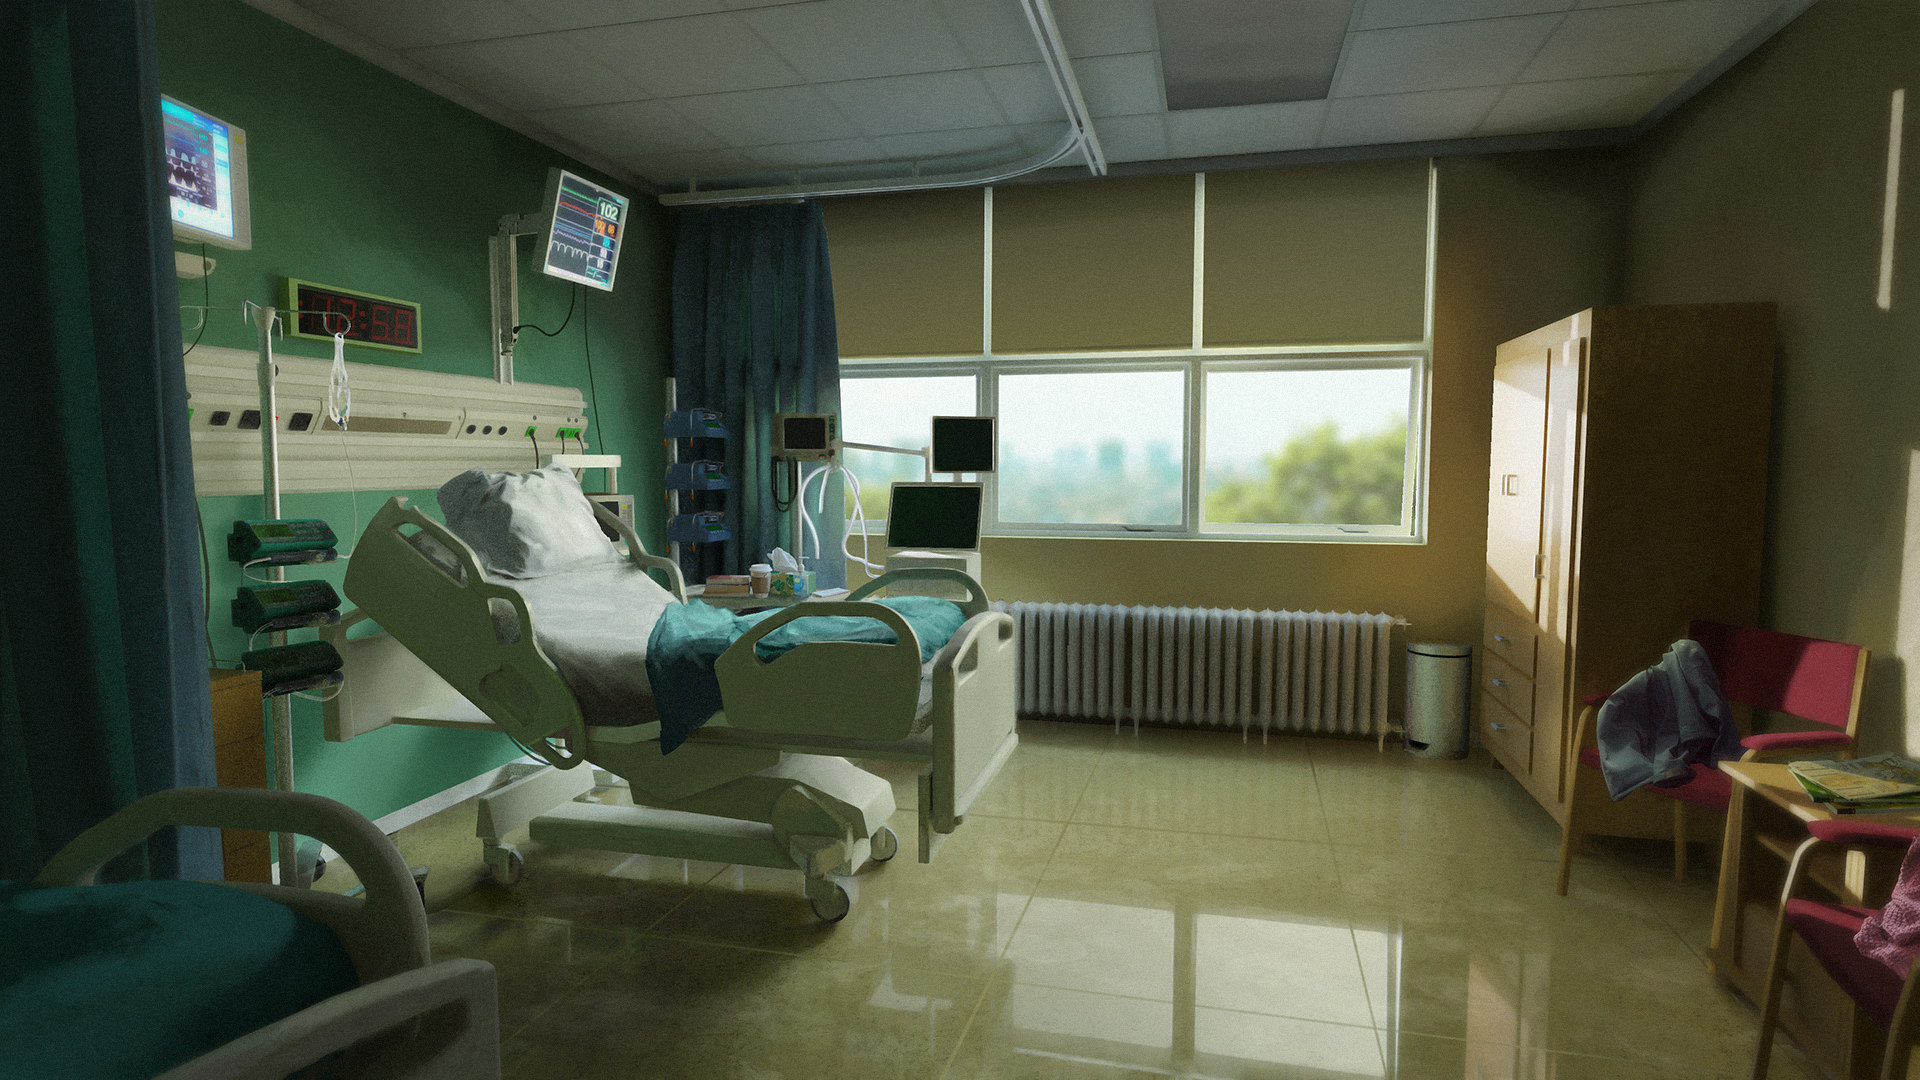 Hospital room Interior for OSCE proposal